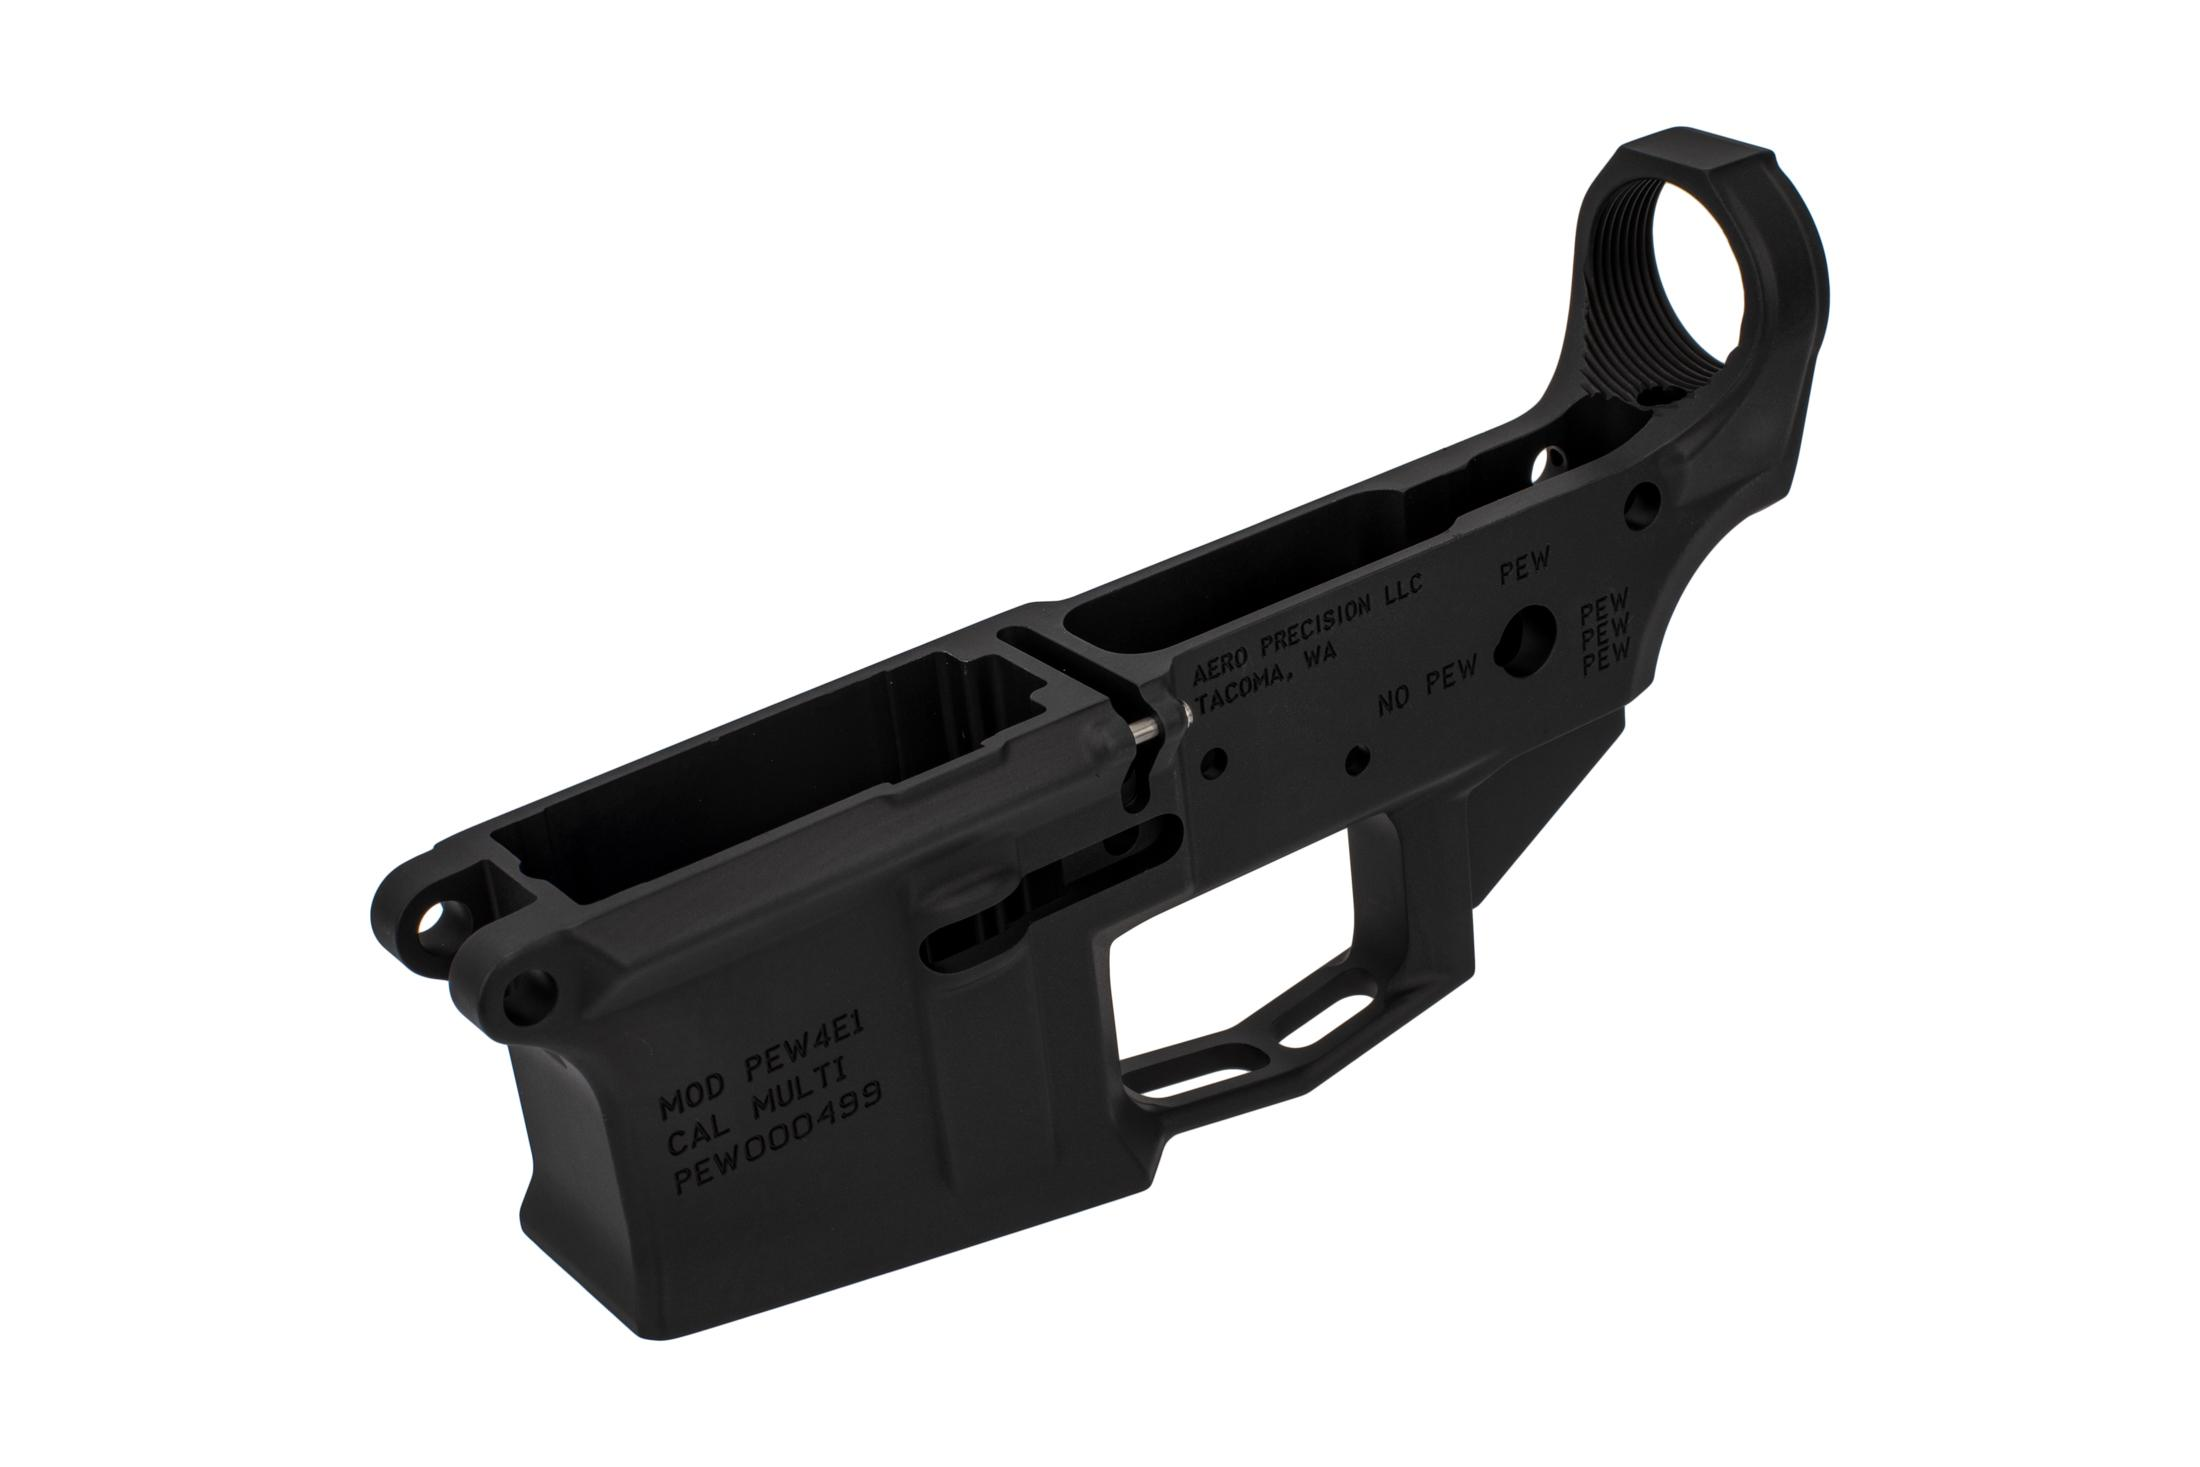 The Aero Precision M4E1 PEW stripped lower receiver features a billet design but is forged 7075-T6 aluminum